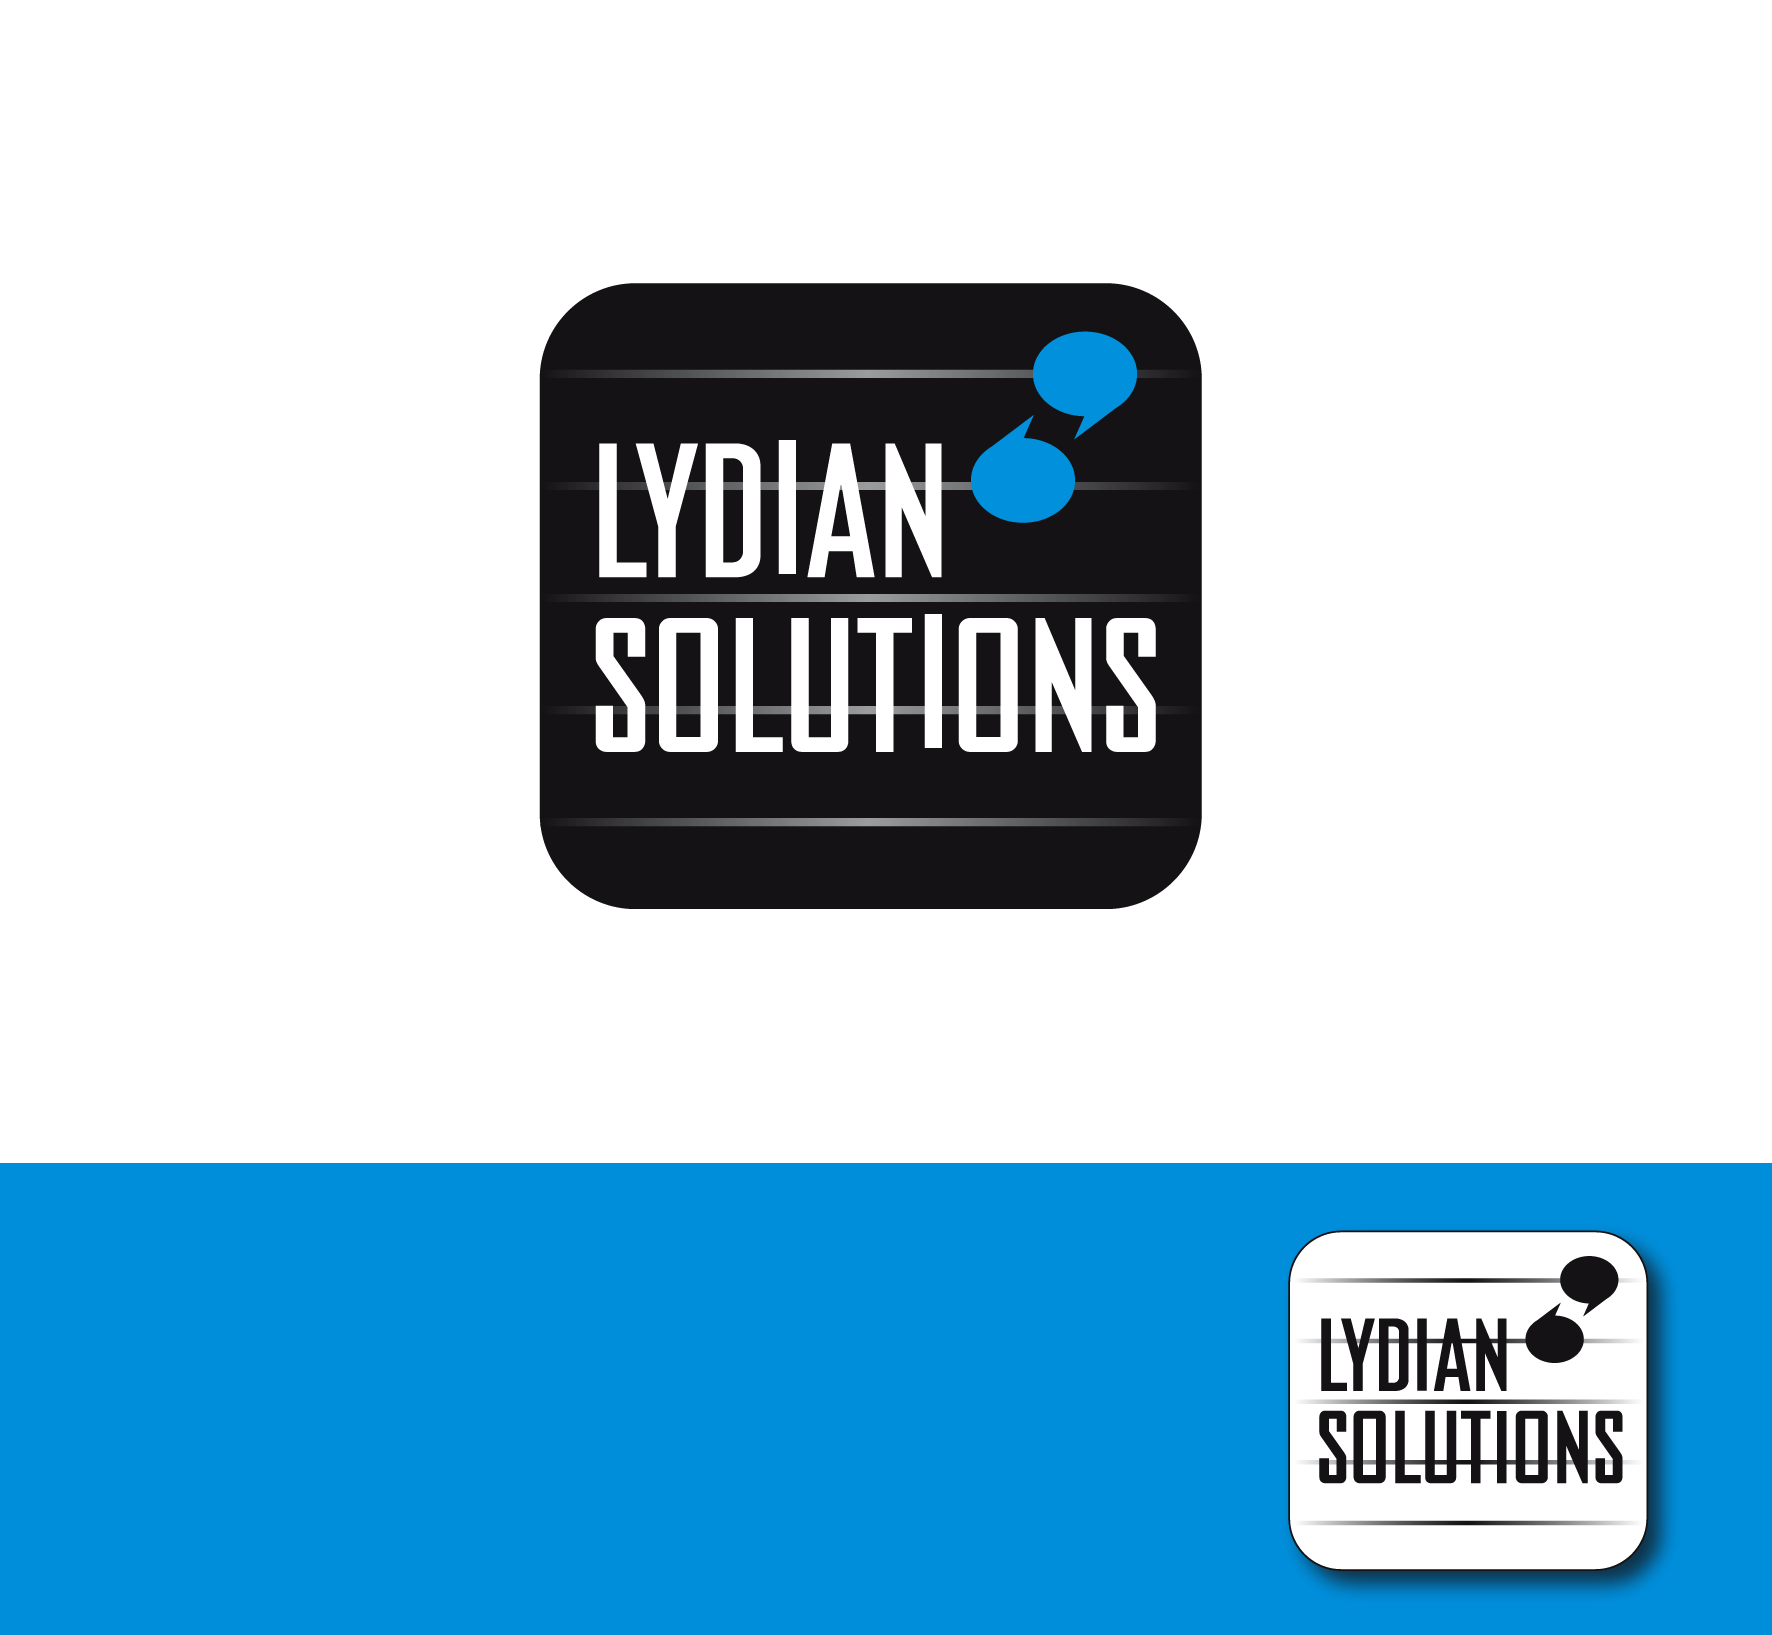 Logo Design by luna - Entry No. 72 in the Logo Design Contest Fun Logo Design for Lydian Solutions.